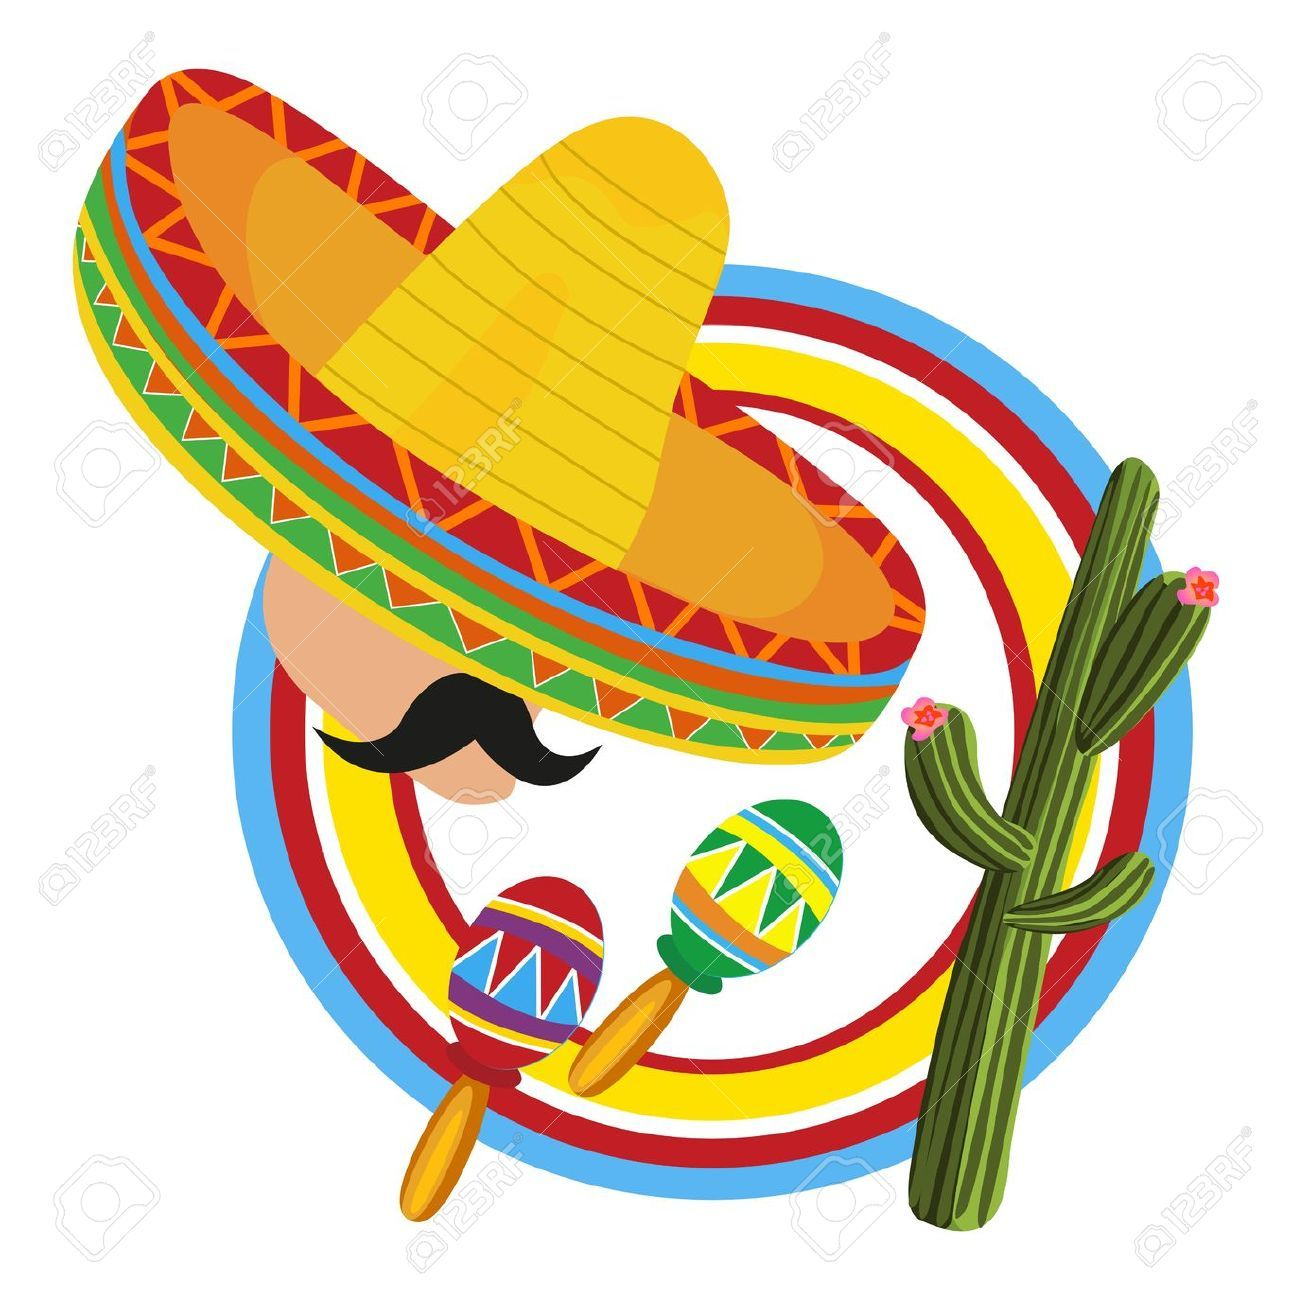 Sombrero clipart google search mexico pinterest for Mexican logos images